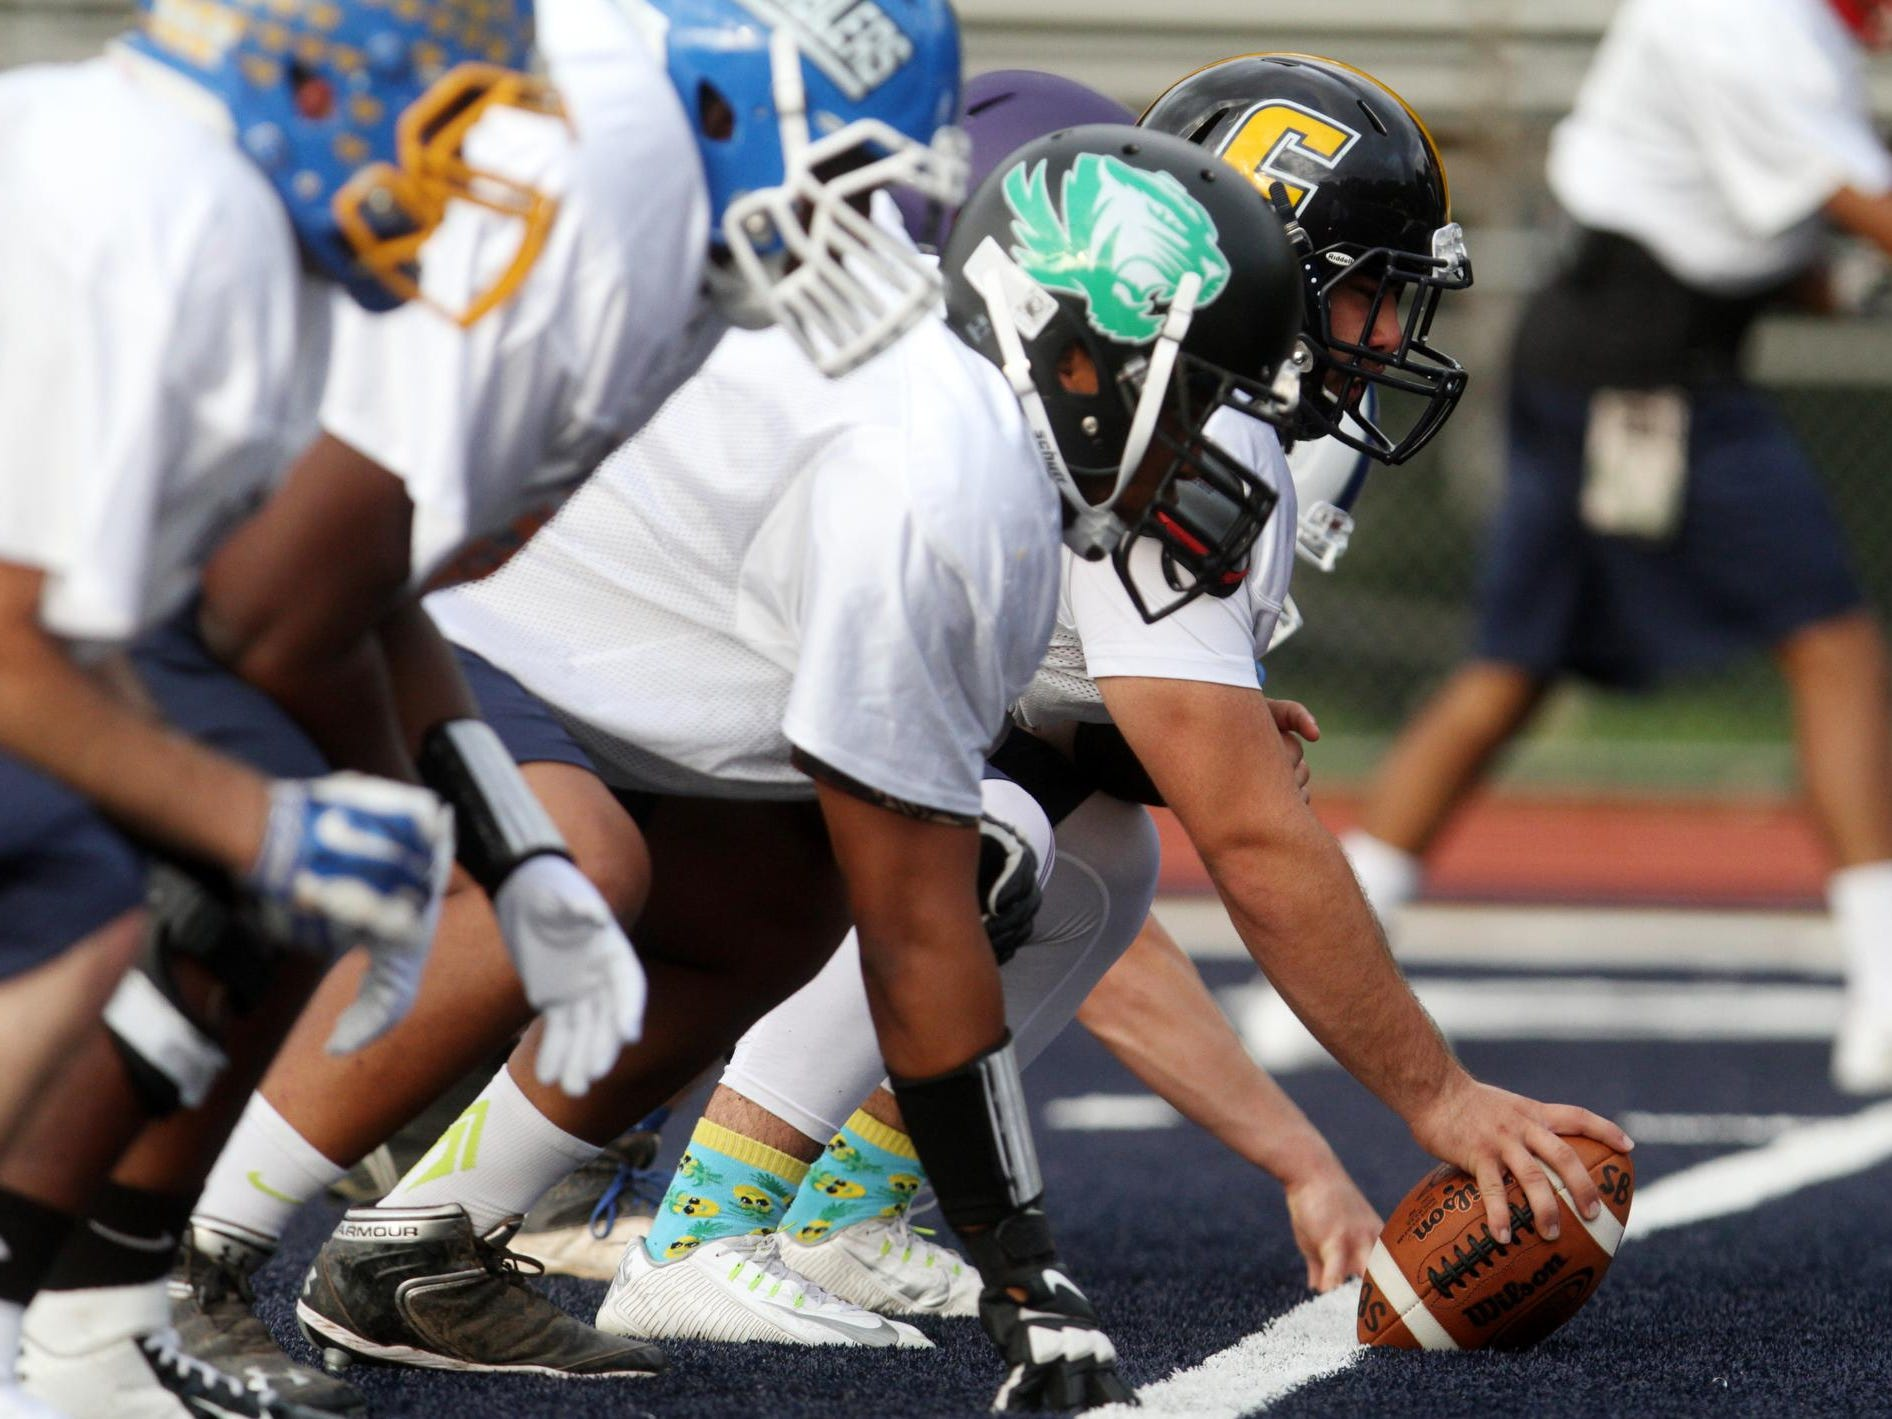 The Middlesex County offensive line practices for the Snapple Bowl, Monday, July 6, 2015, at Colonia High School in Woodbridge, NJ.